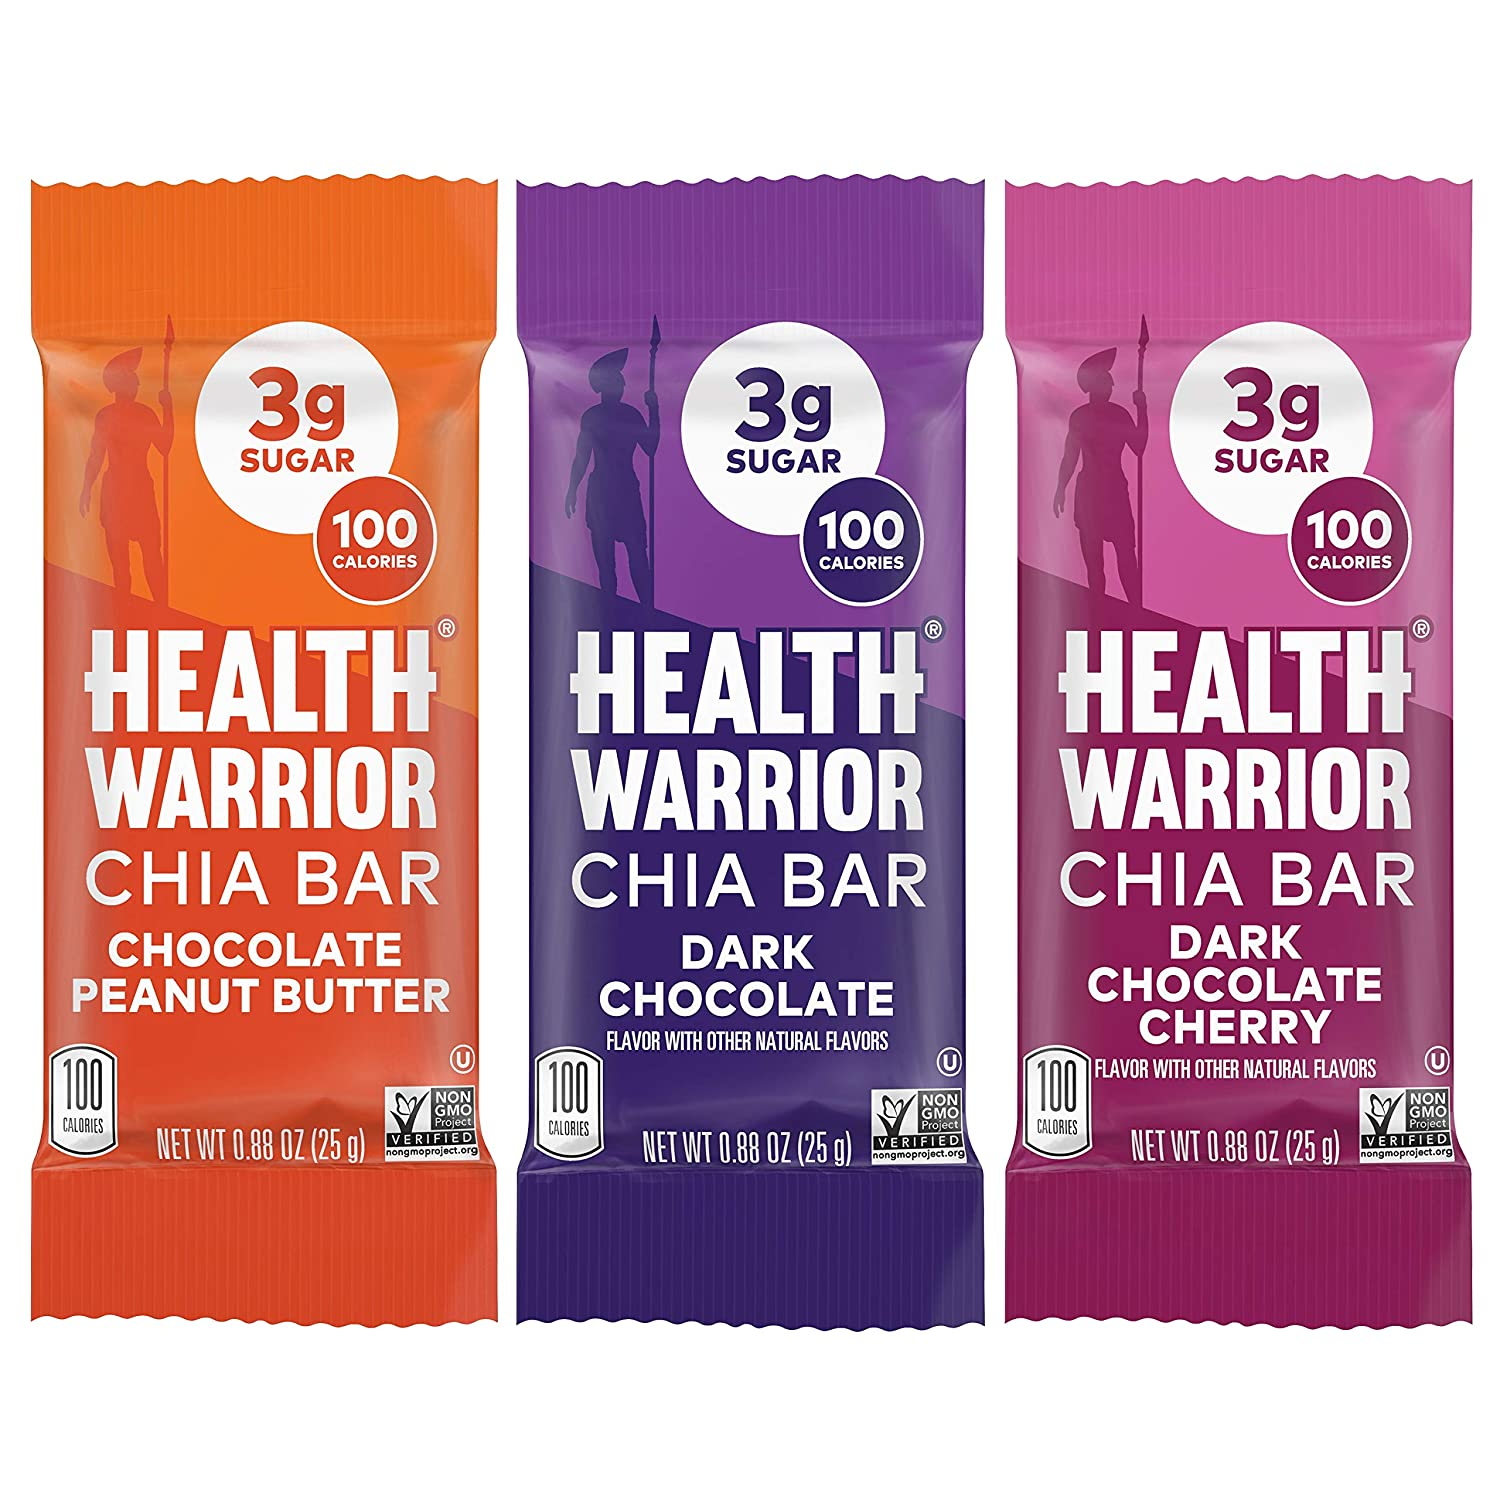 HEALTH WARRIOR Chia Bars, Chocolate Variety Pack, Gluten Free, 25g bars, 15 Count